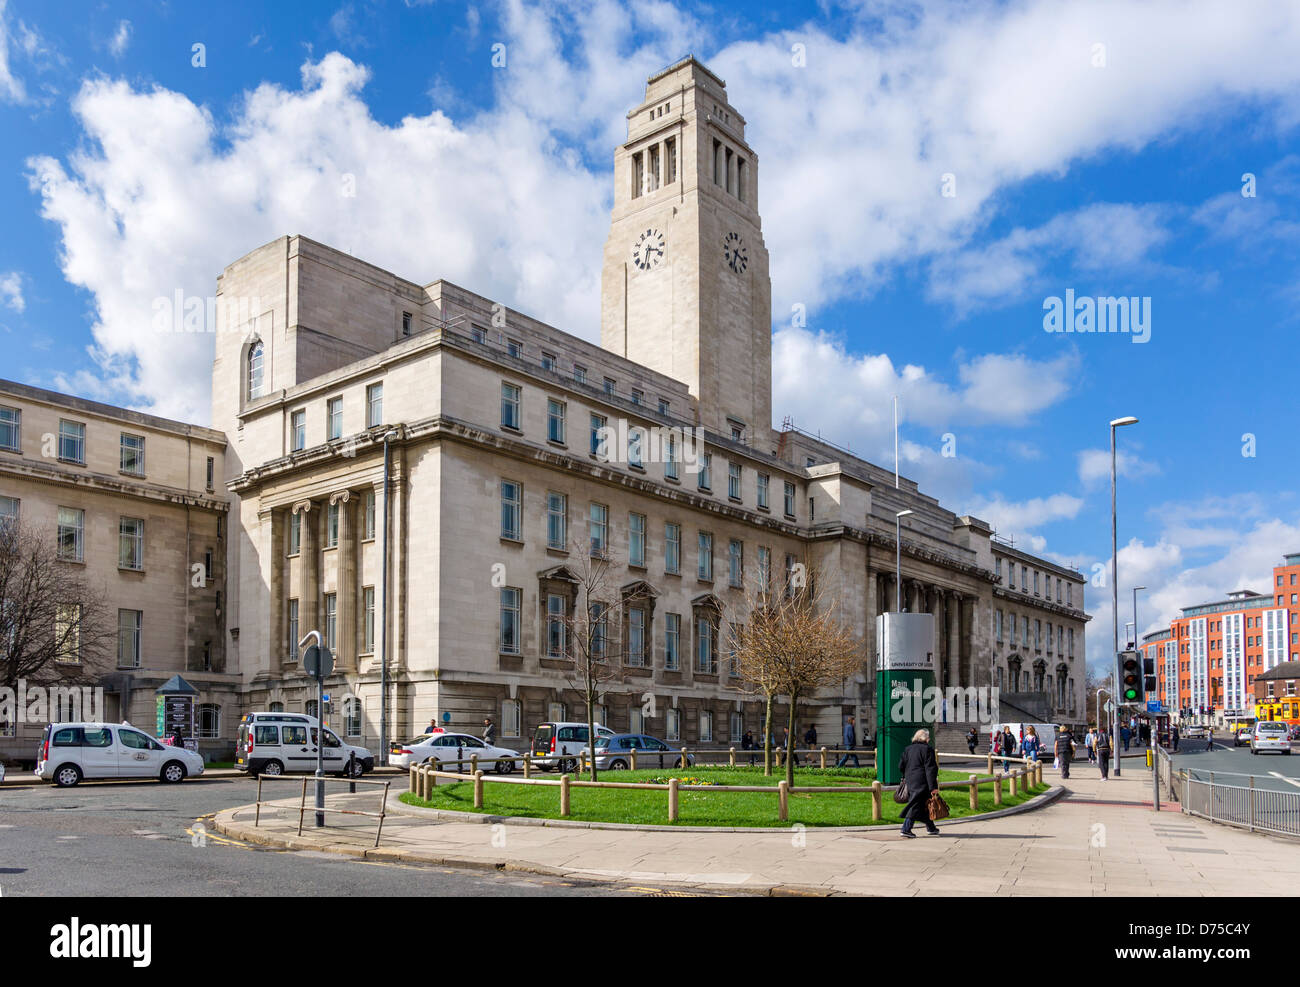 Parkinson Building at the main entrance to the University of Leeds campus, Leeds, West Yorkshire, UK - Stock Image